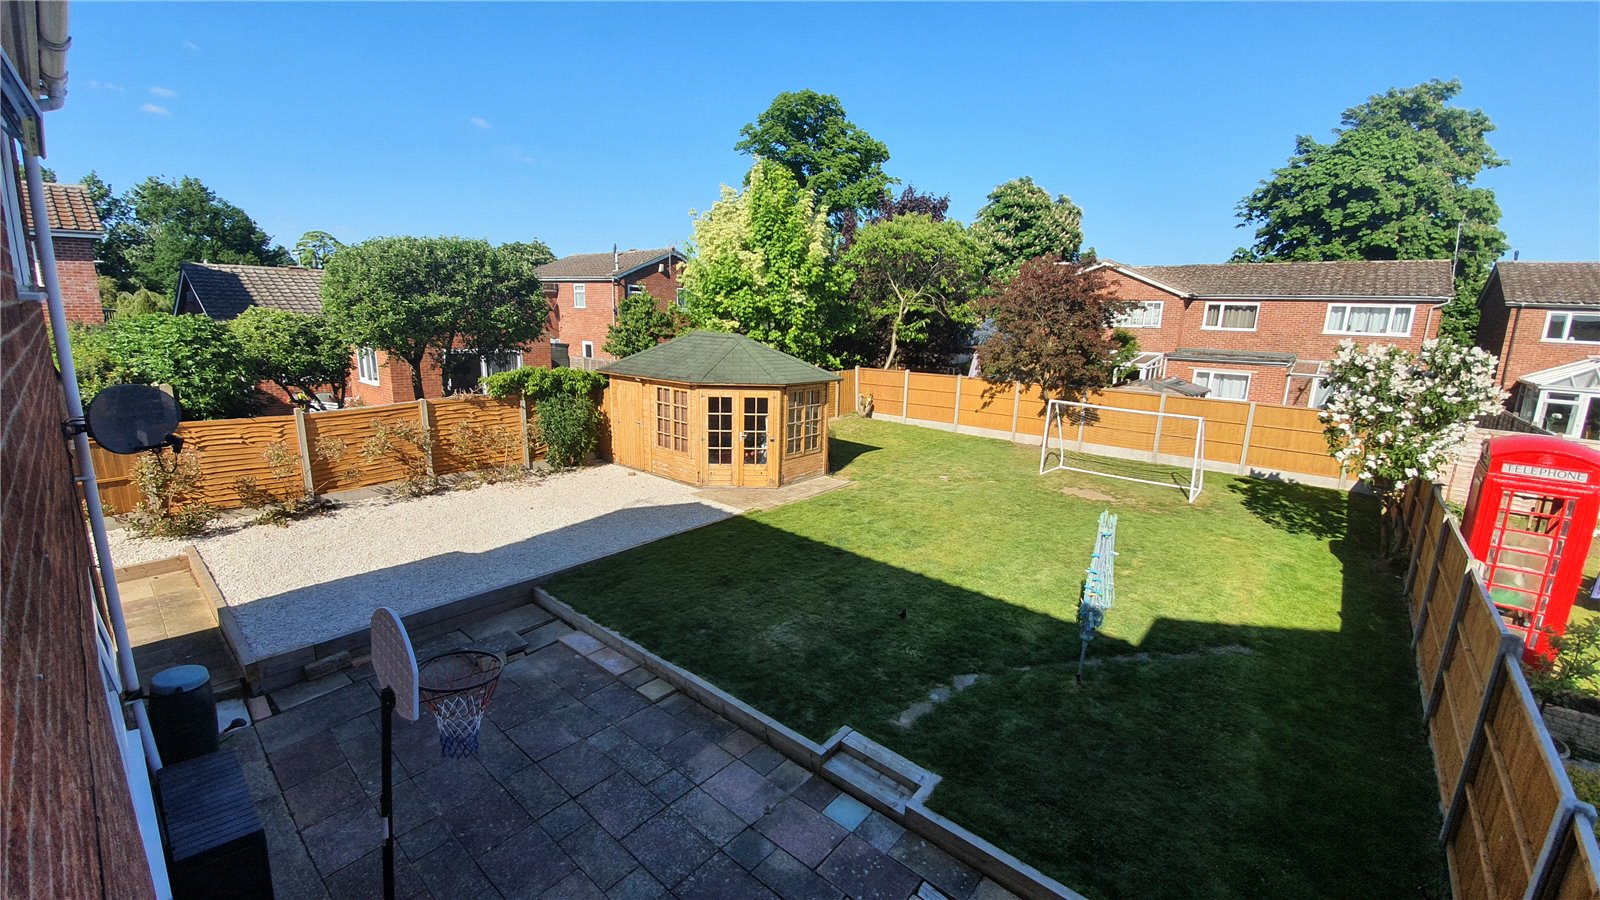 3 bed house for sale in The Sycamores, Little Paxton  - Property Image 6